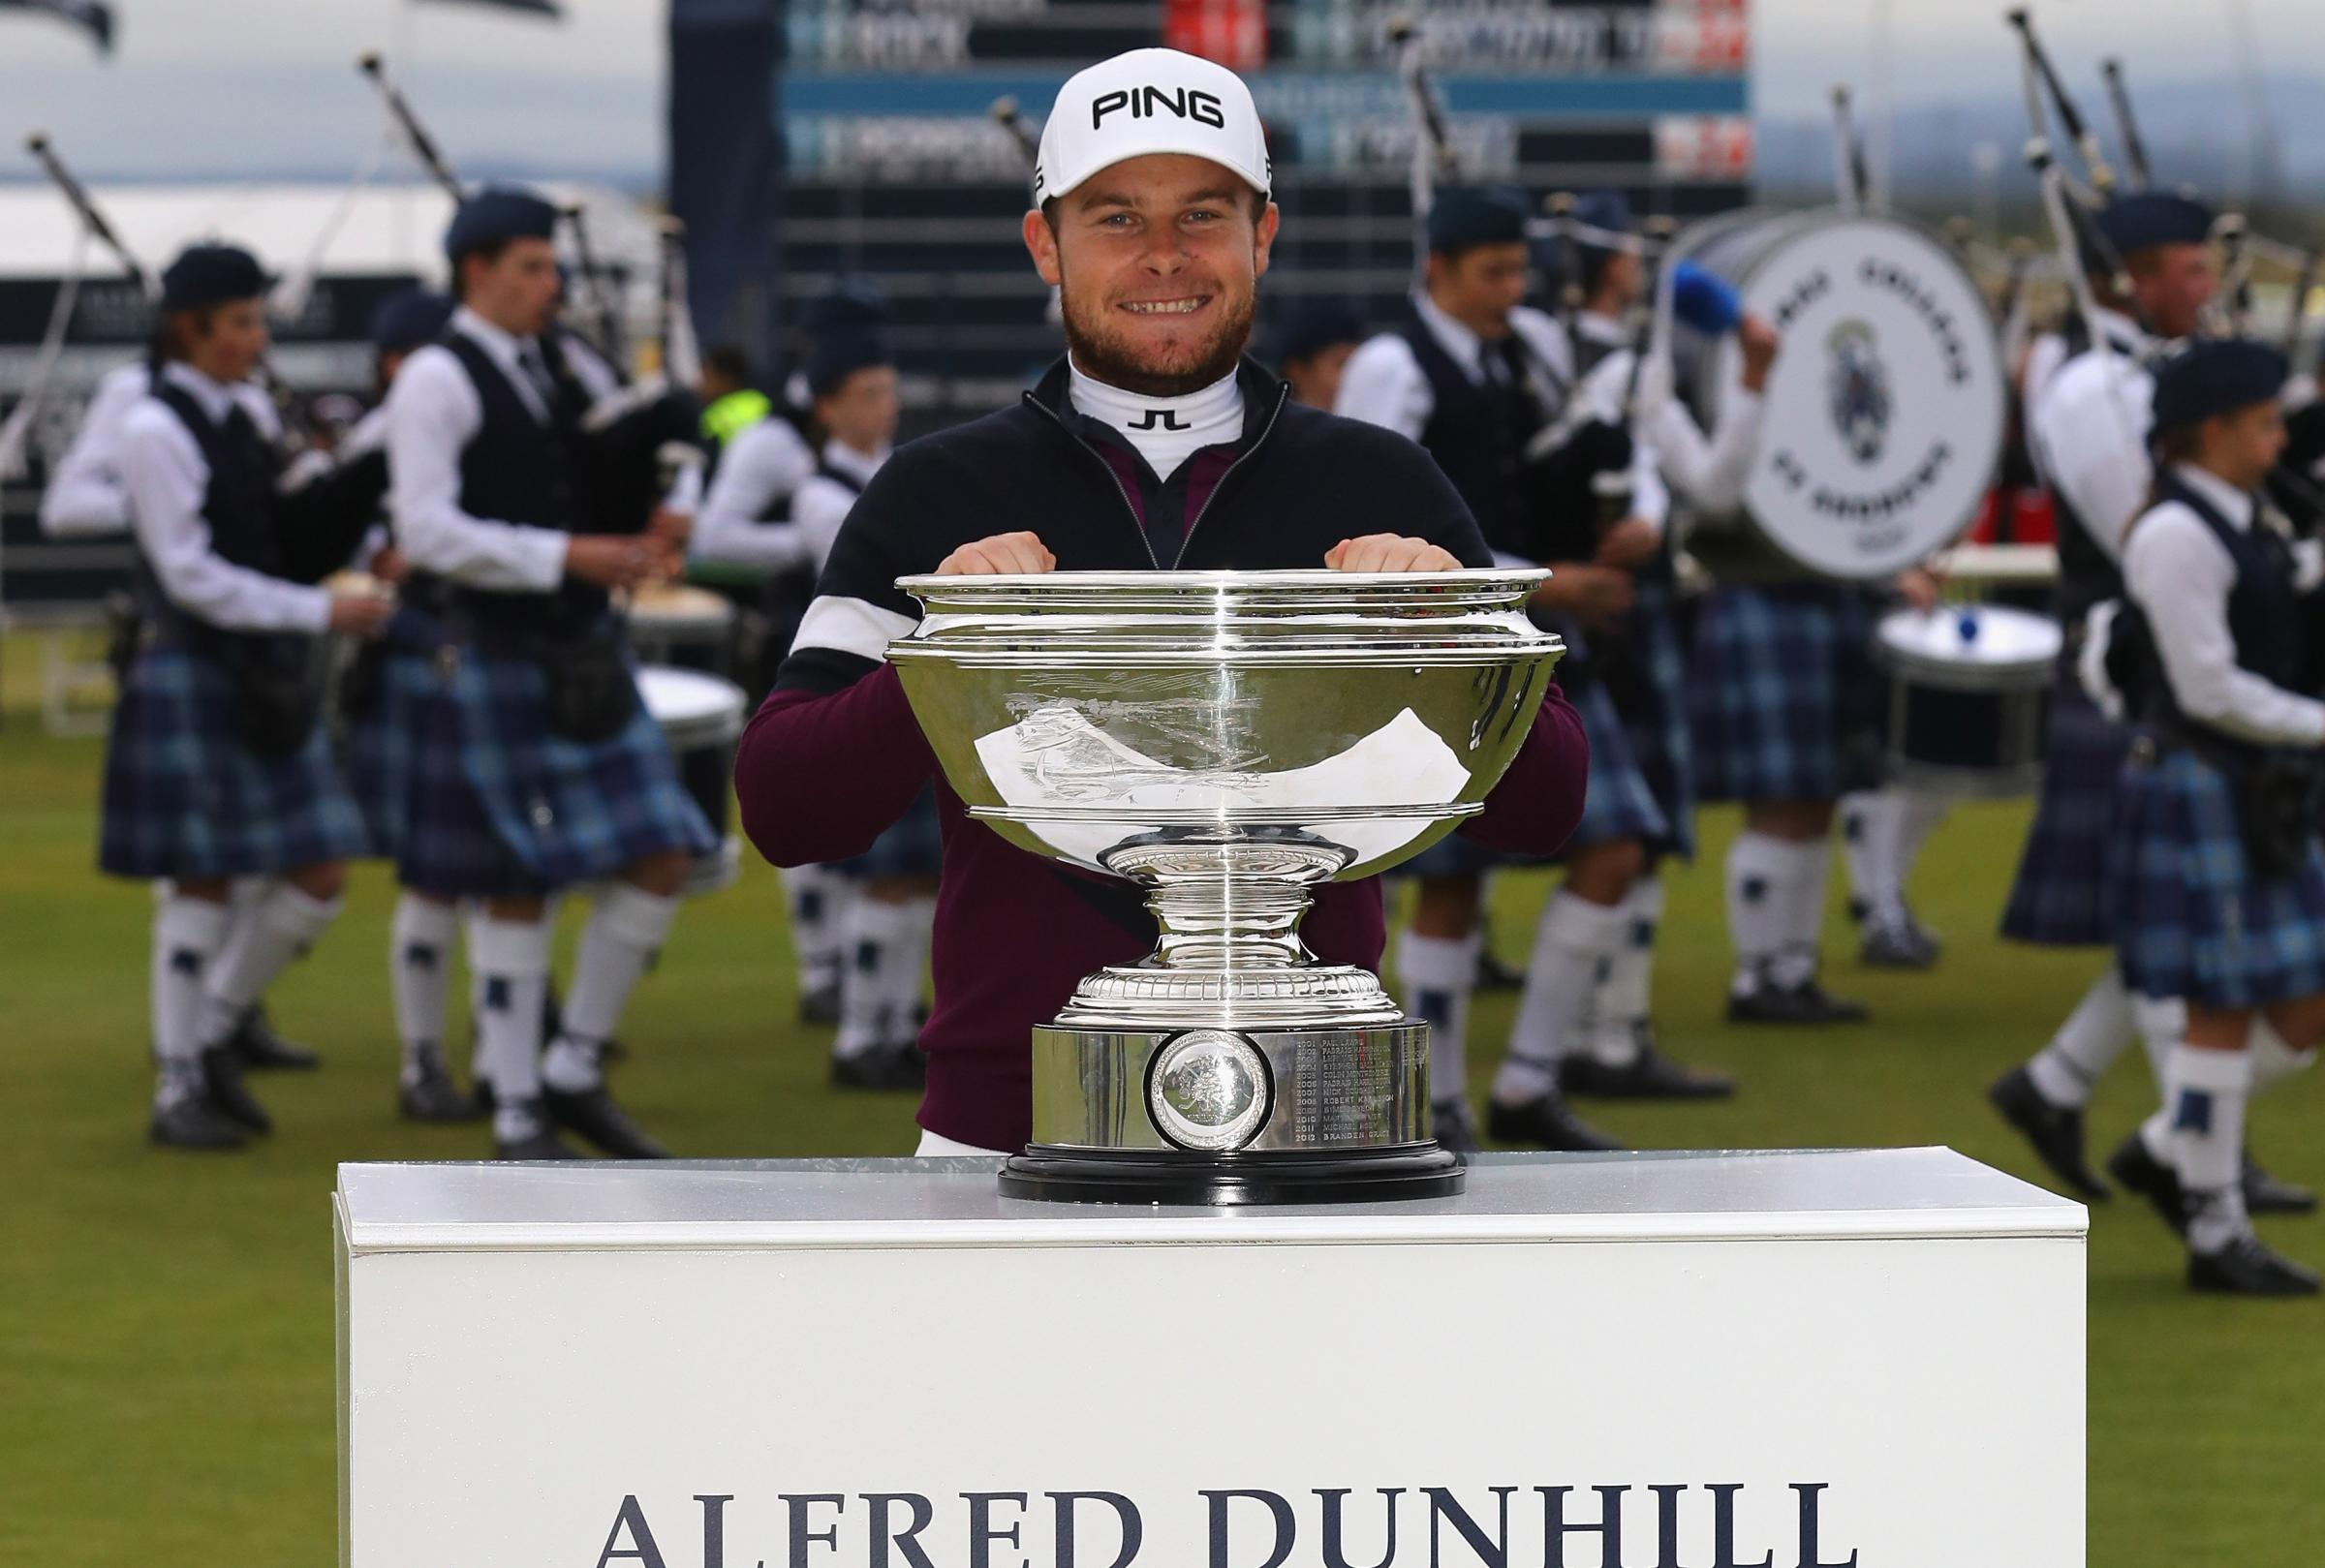 Tyrrell Hatton celebrates victory with the trophy following the final round of the 2017 Alfred Dunhill Championship